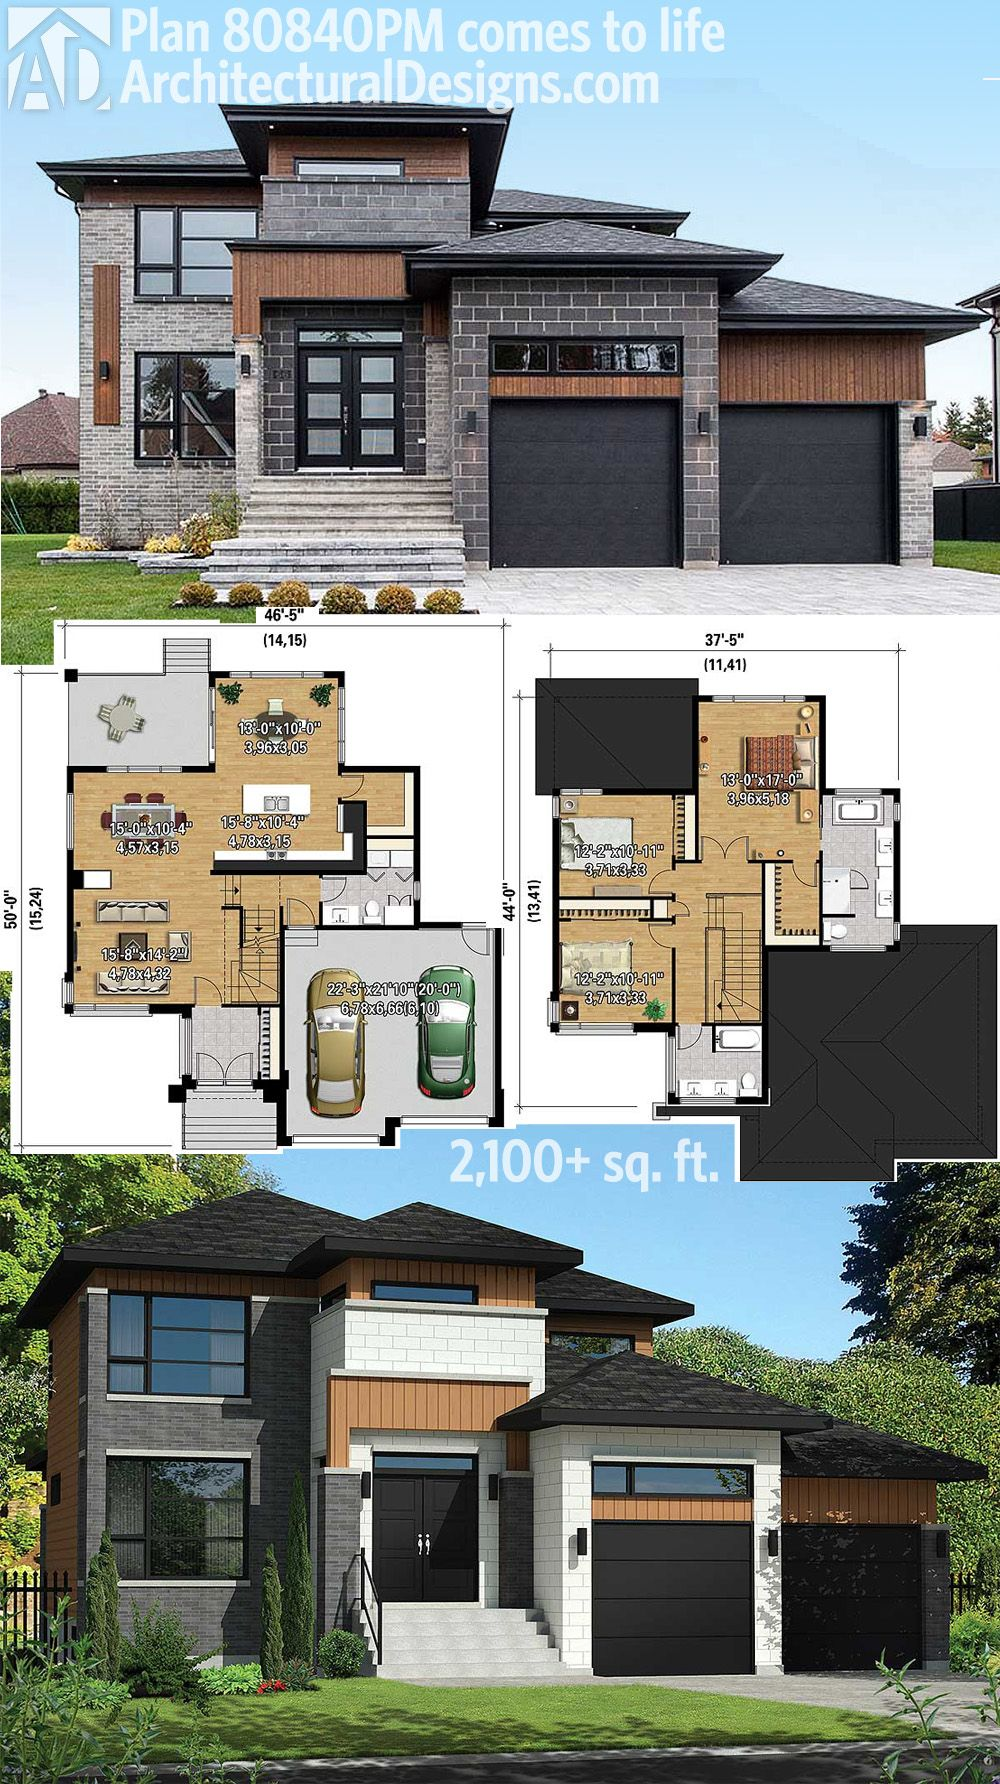 Architectural designs modern house plan pm gives you over square feet of living with also multi level pinterest rh co